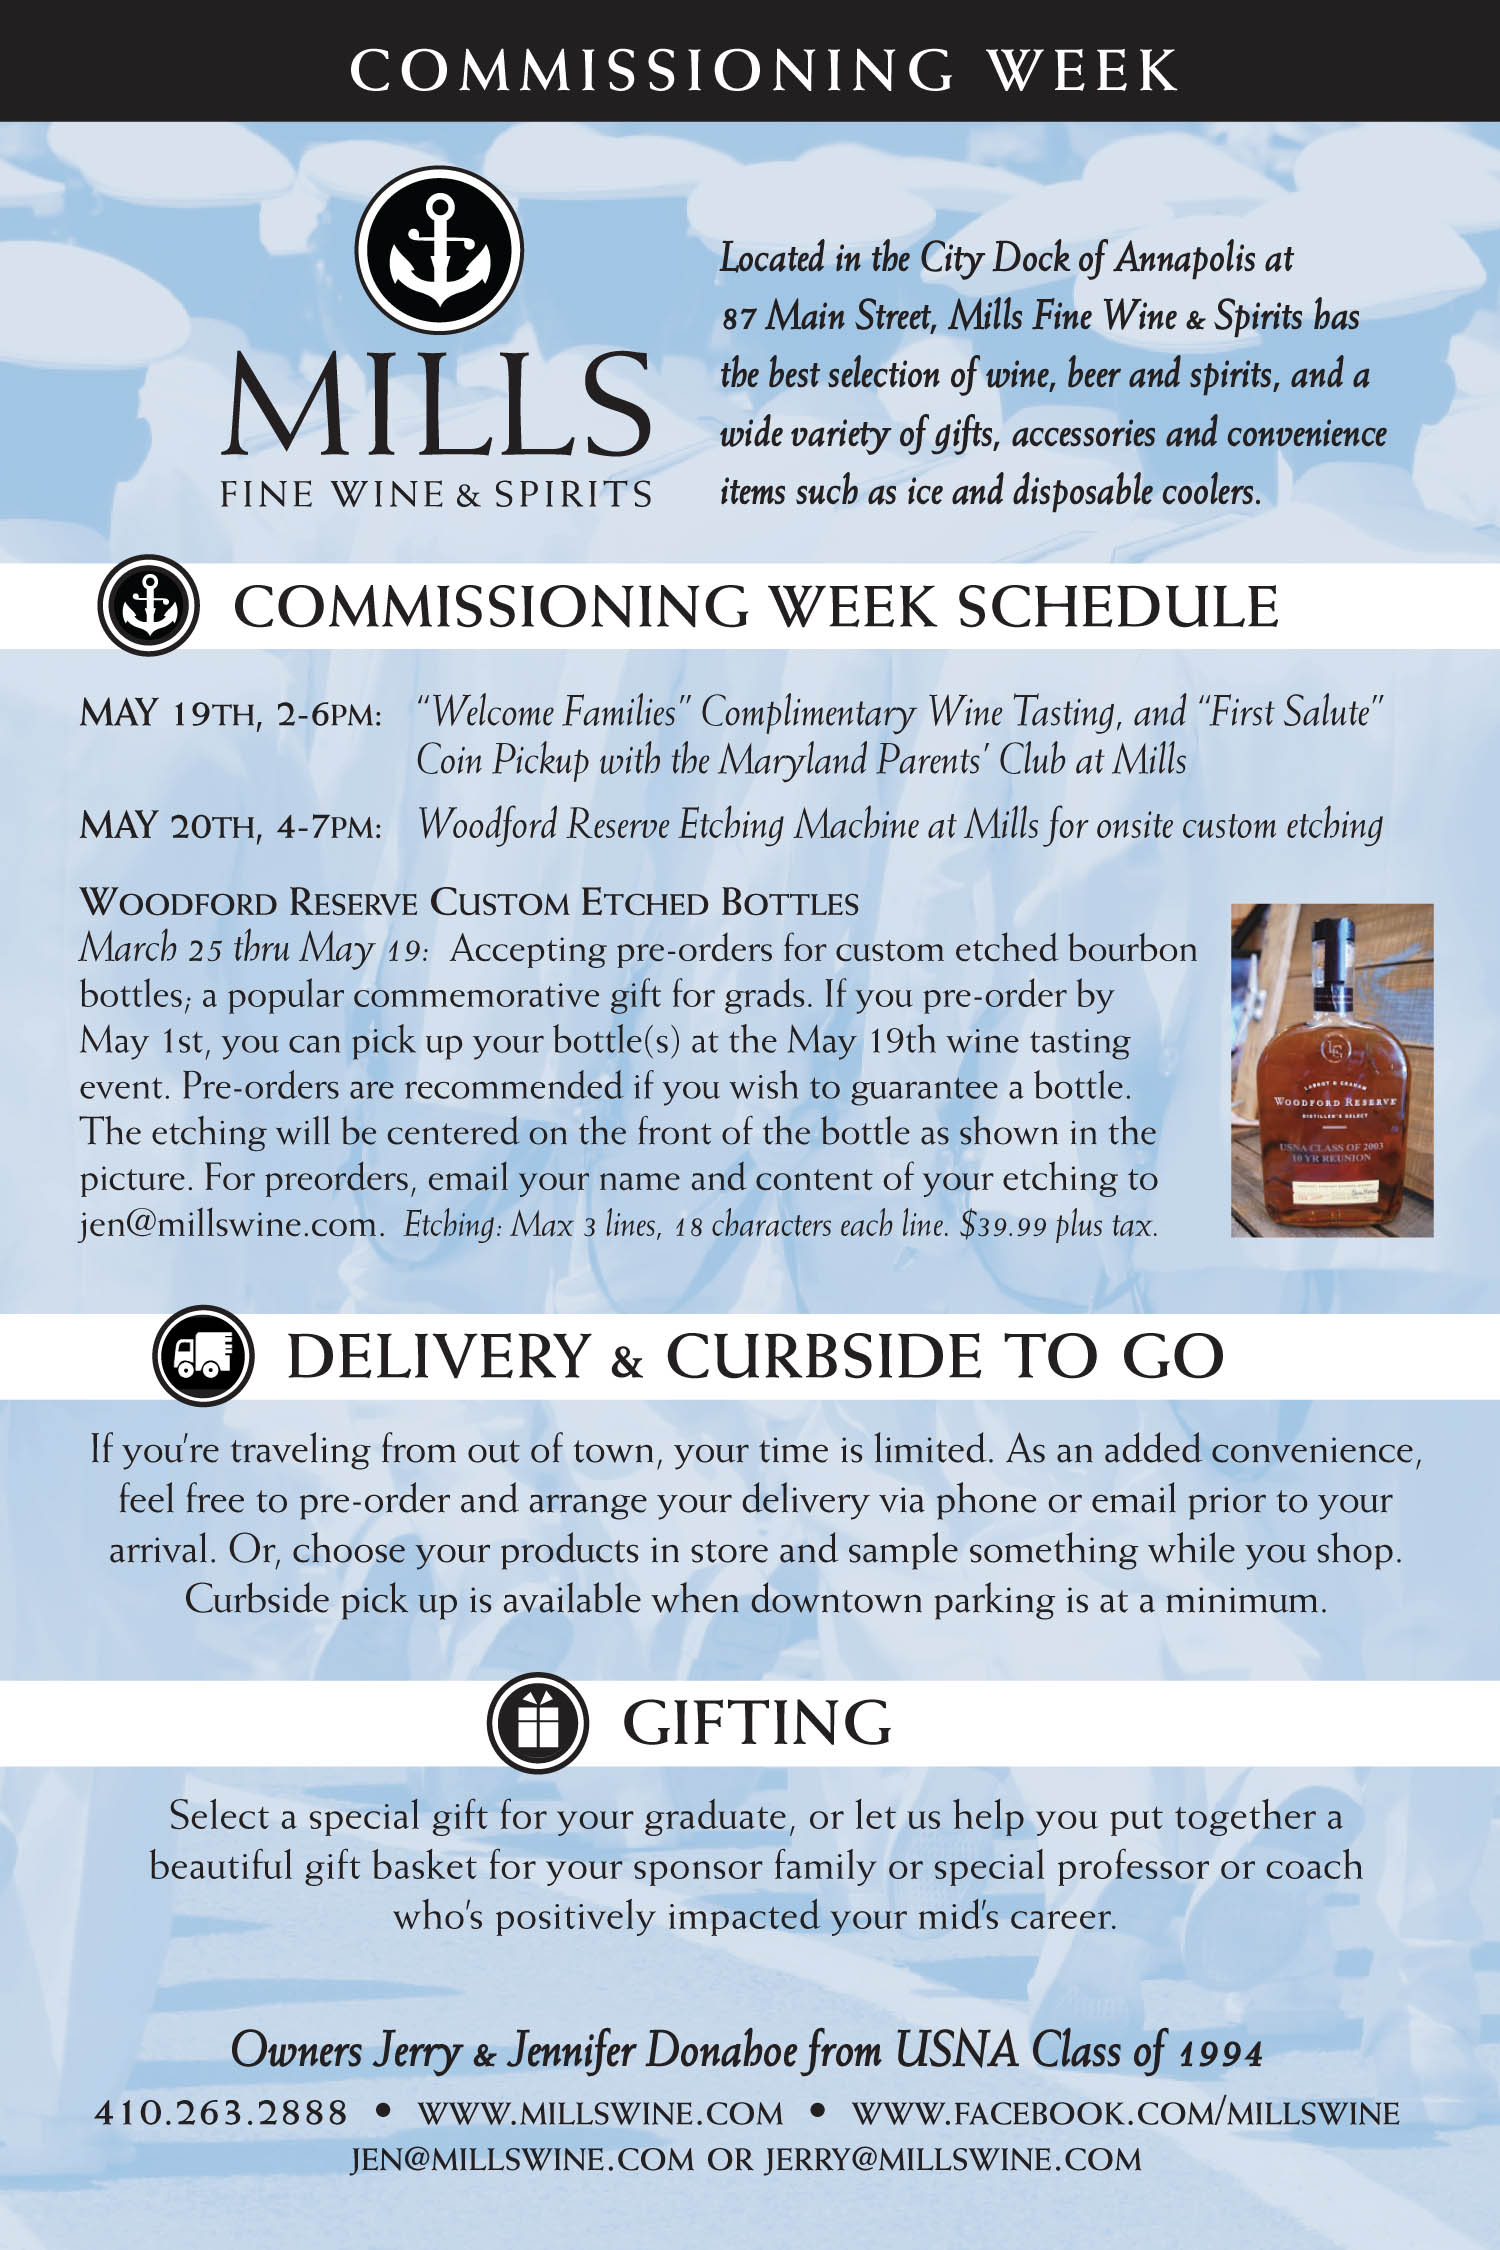 Woodford Reserve Bourbon Bottle Custom Etching Preorders for Commissioning Week